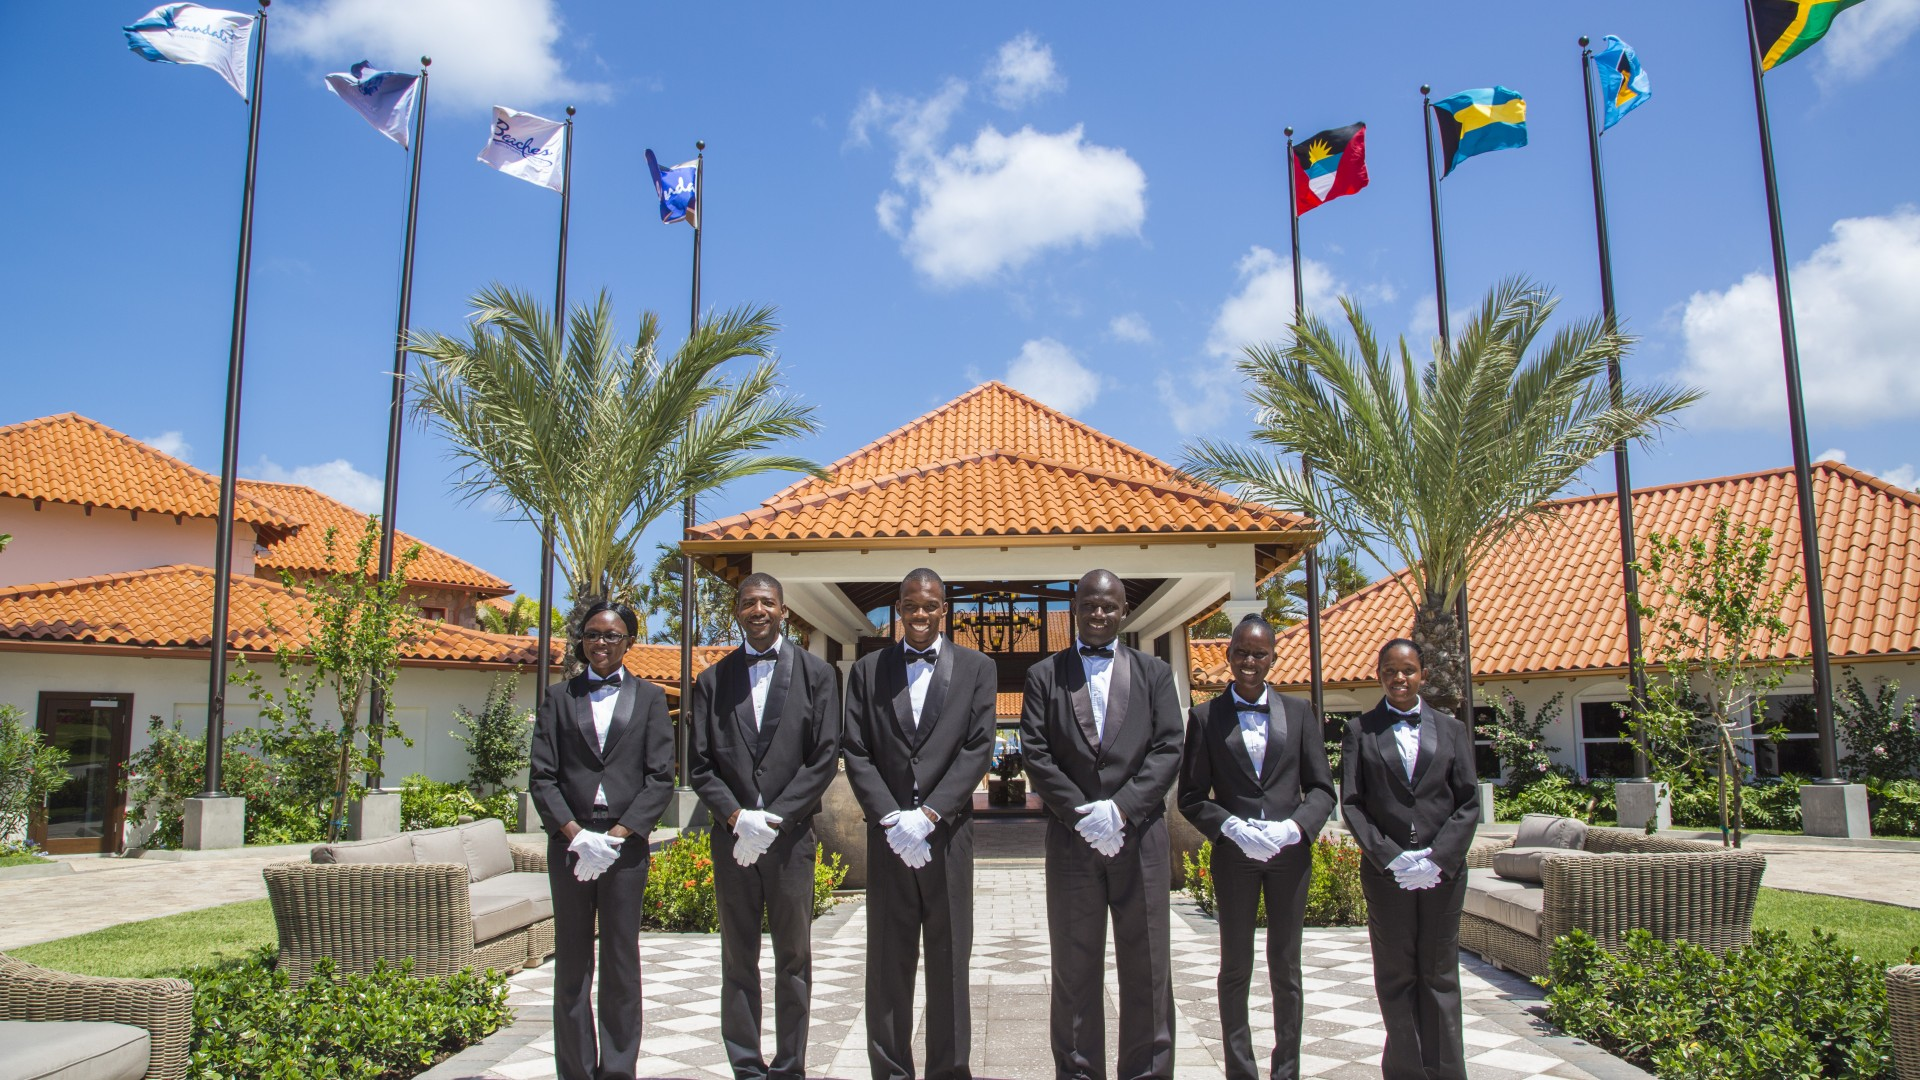 Staff at Sandals Grenada Resort & Spa